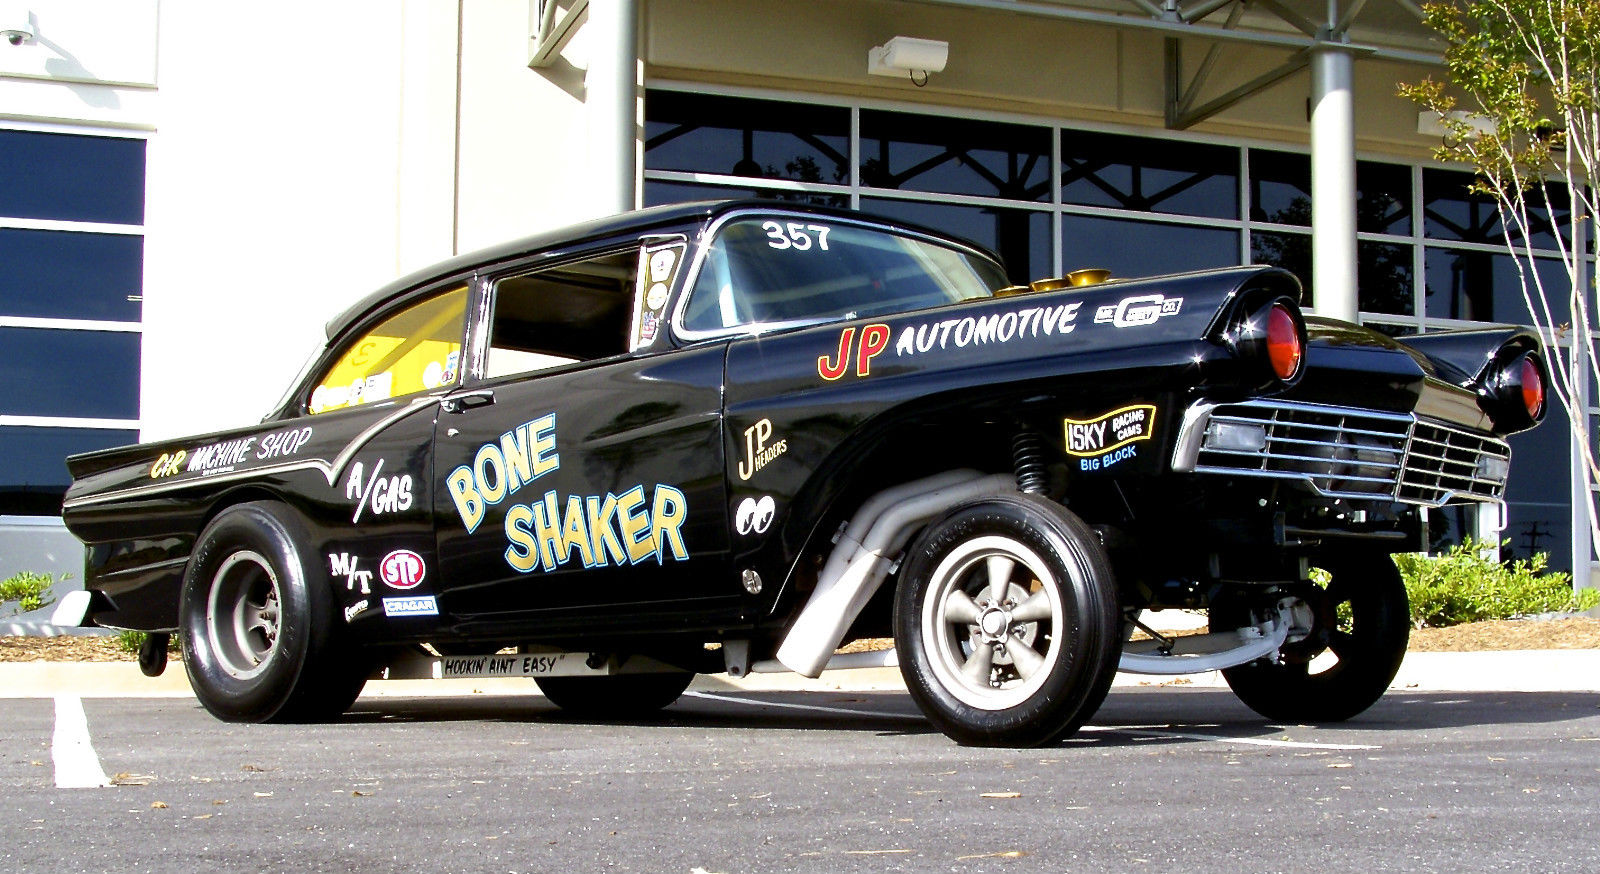 The Bone Shaker 1957 Ford Gasser Is For Sale! Injected Boss 429, Four Speed Trans – Perfection!